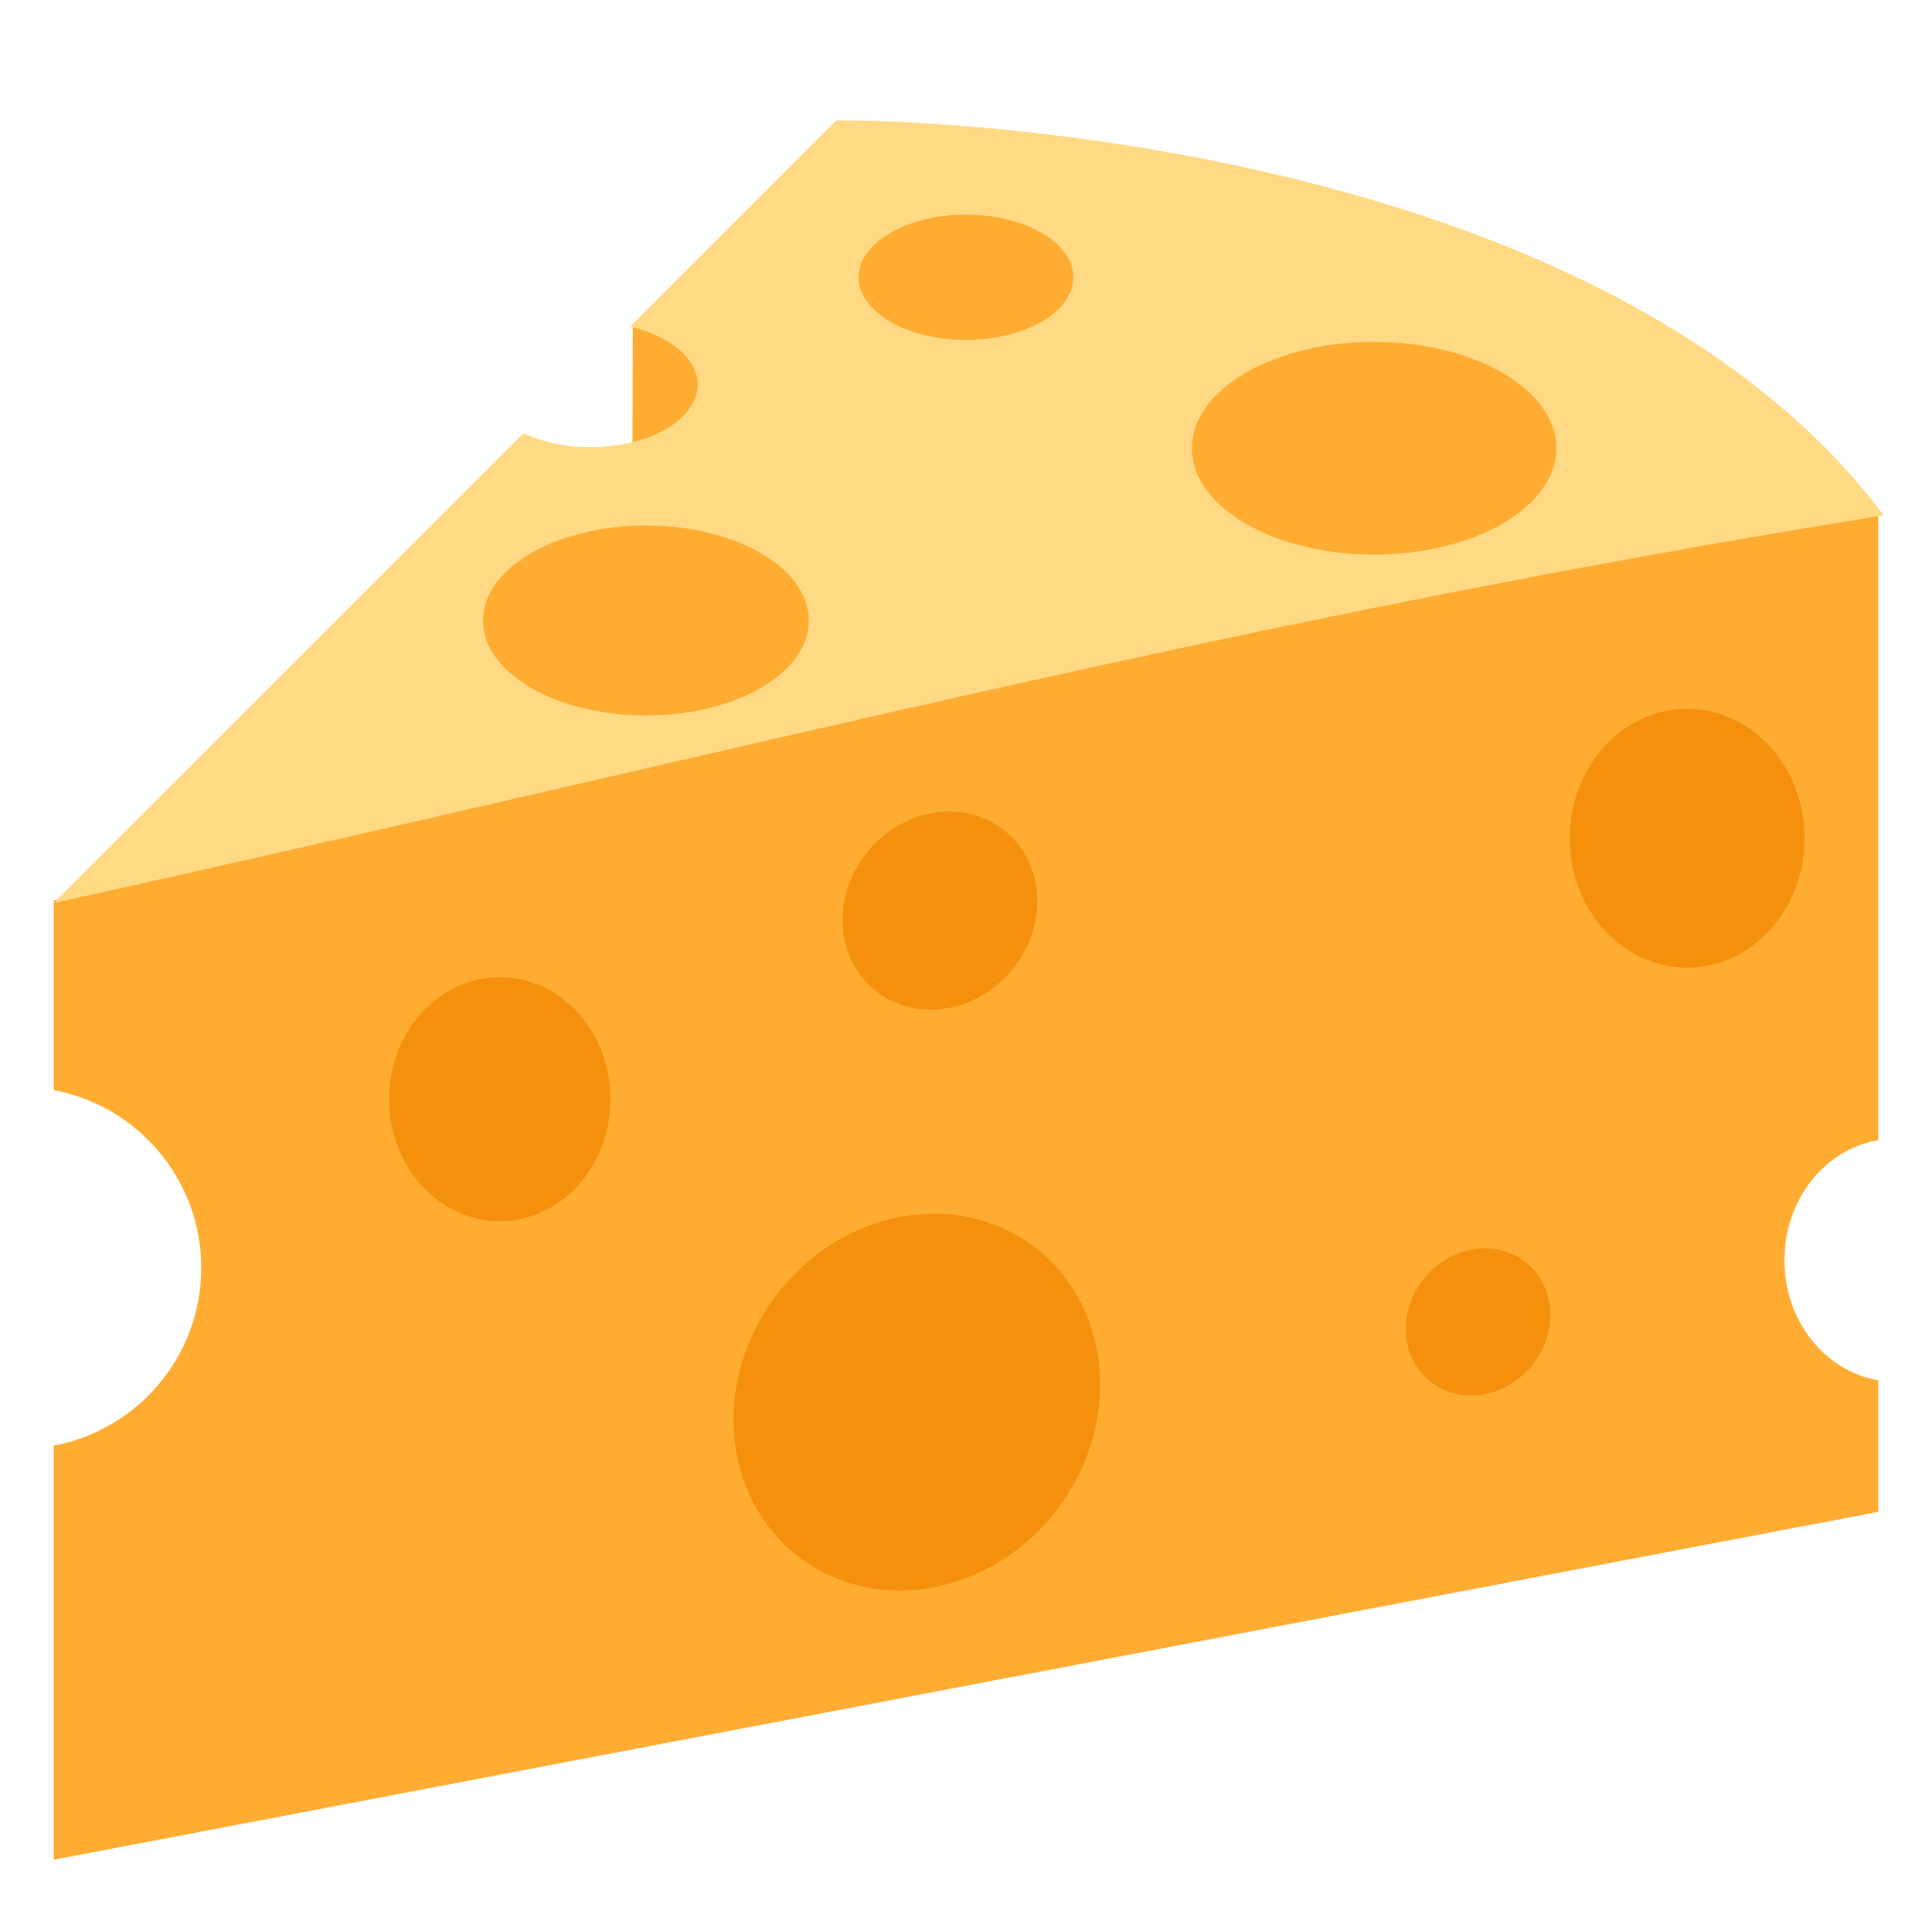 Dairy clipart cheese wedge, Dairy cheese wedge Transparent.